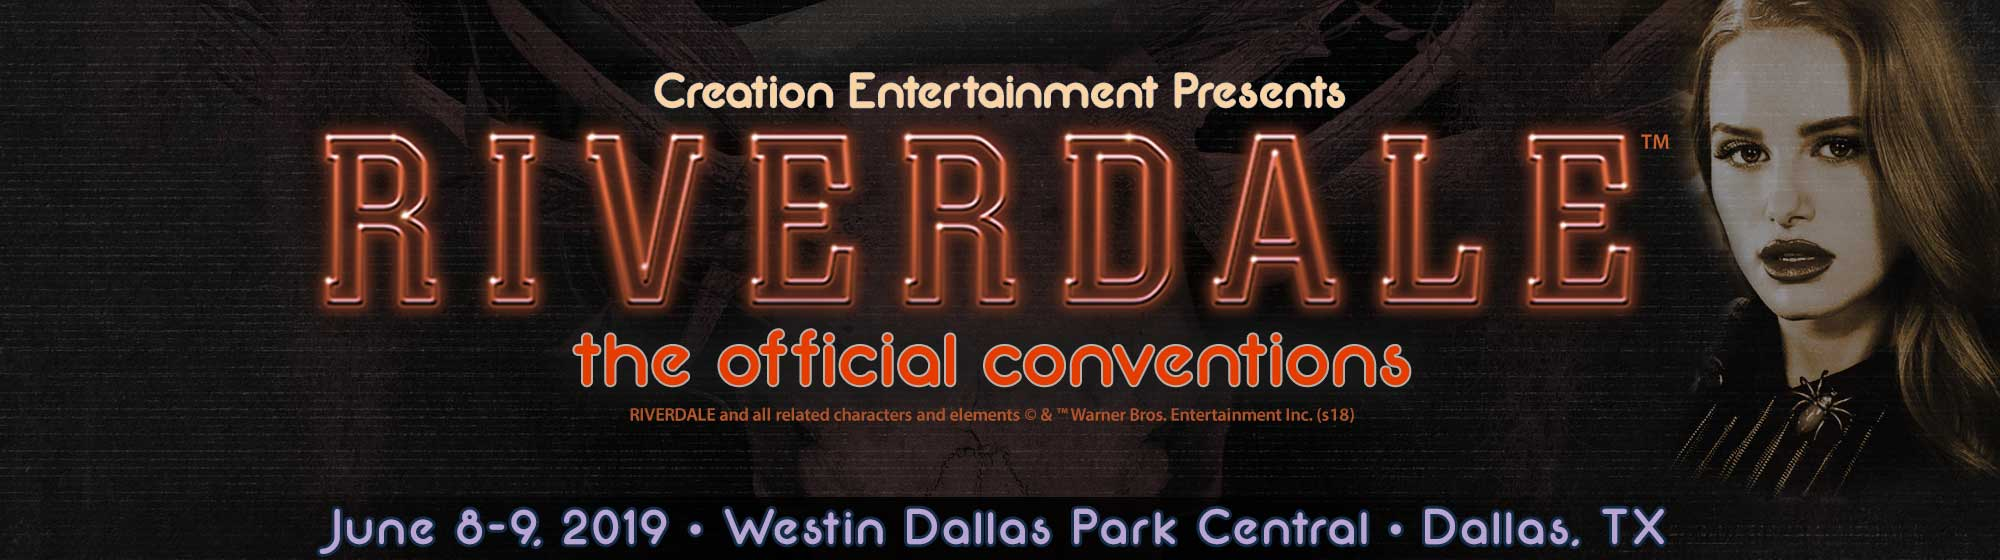 Creation Entertainment's Riverdale The Offical Convention in